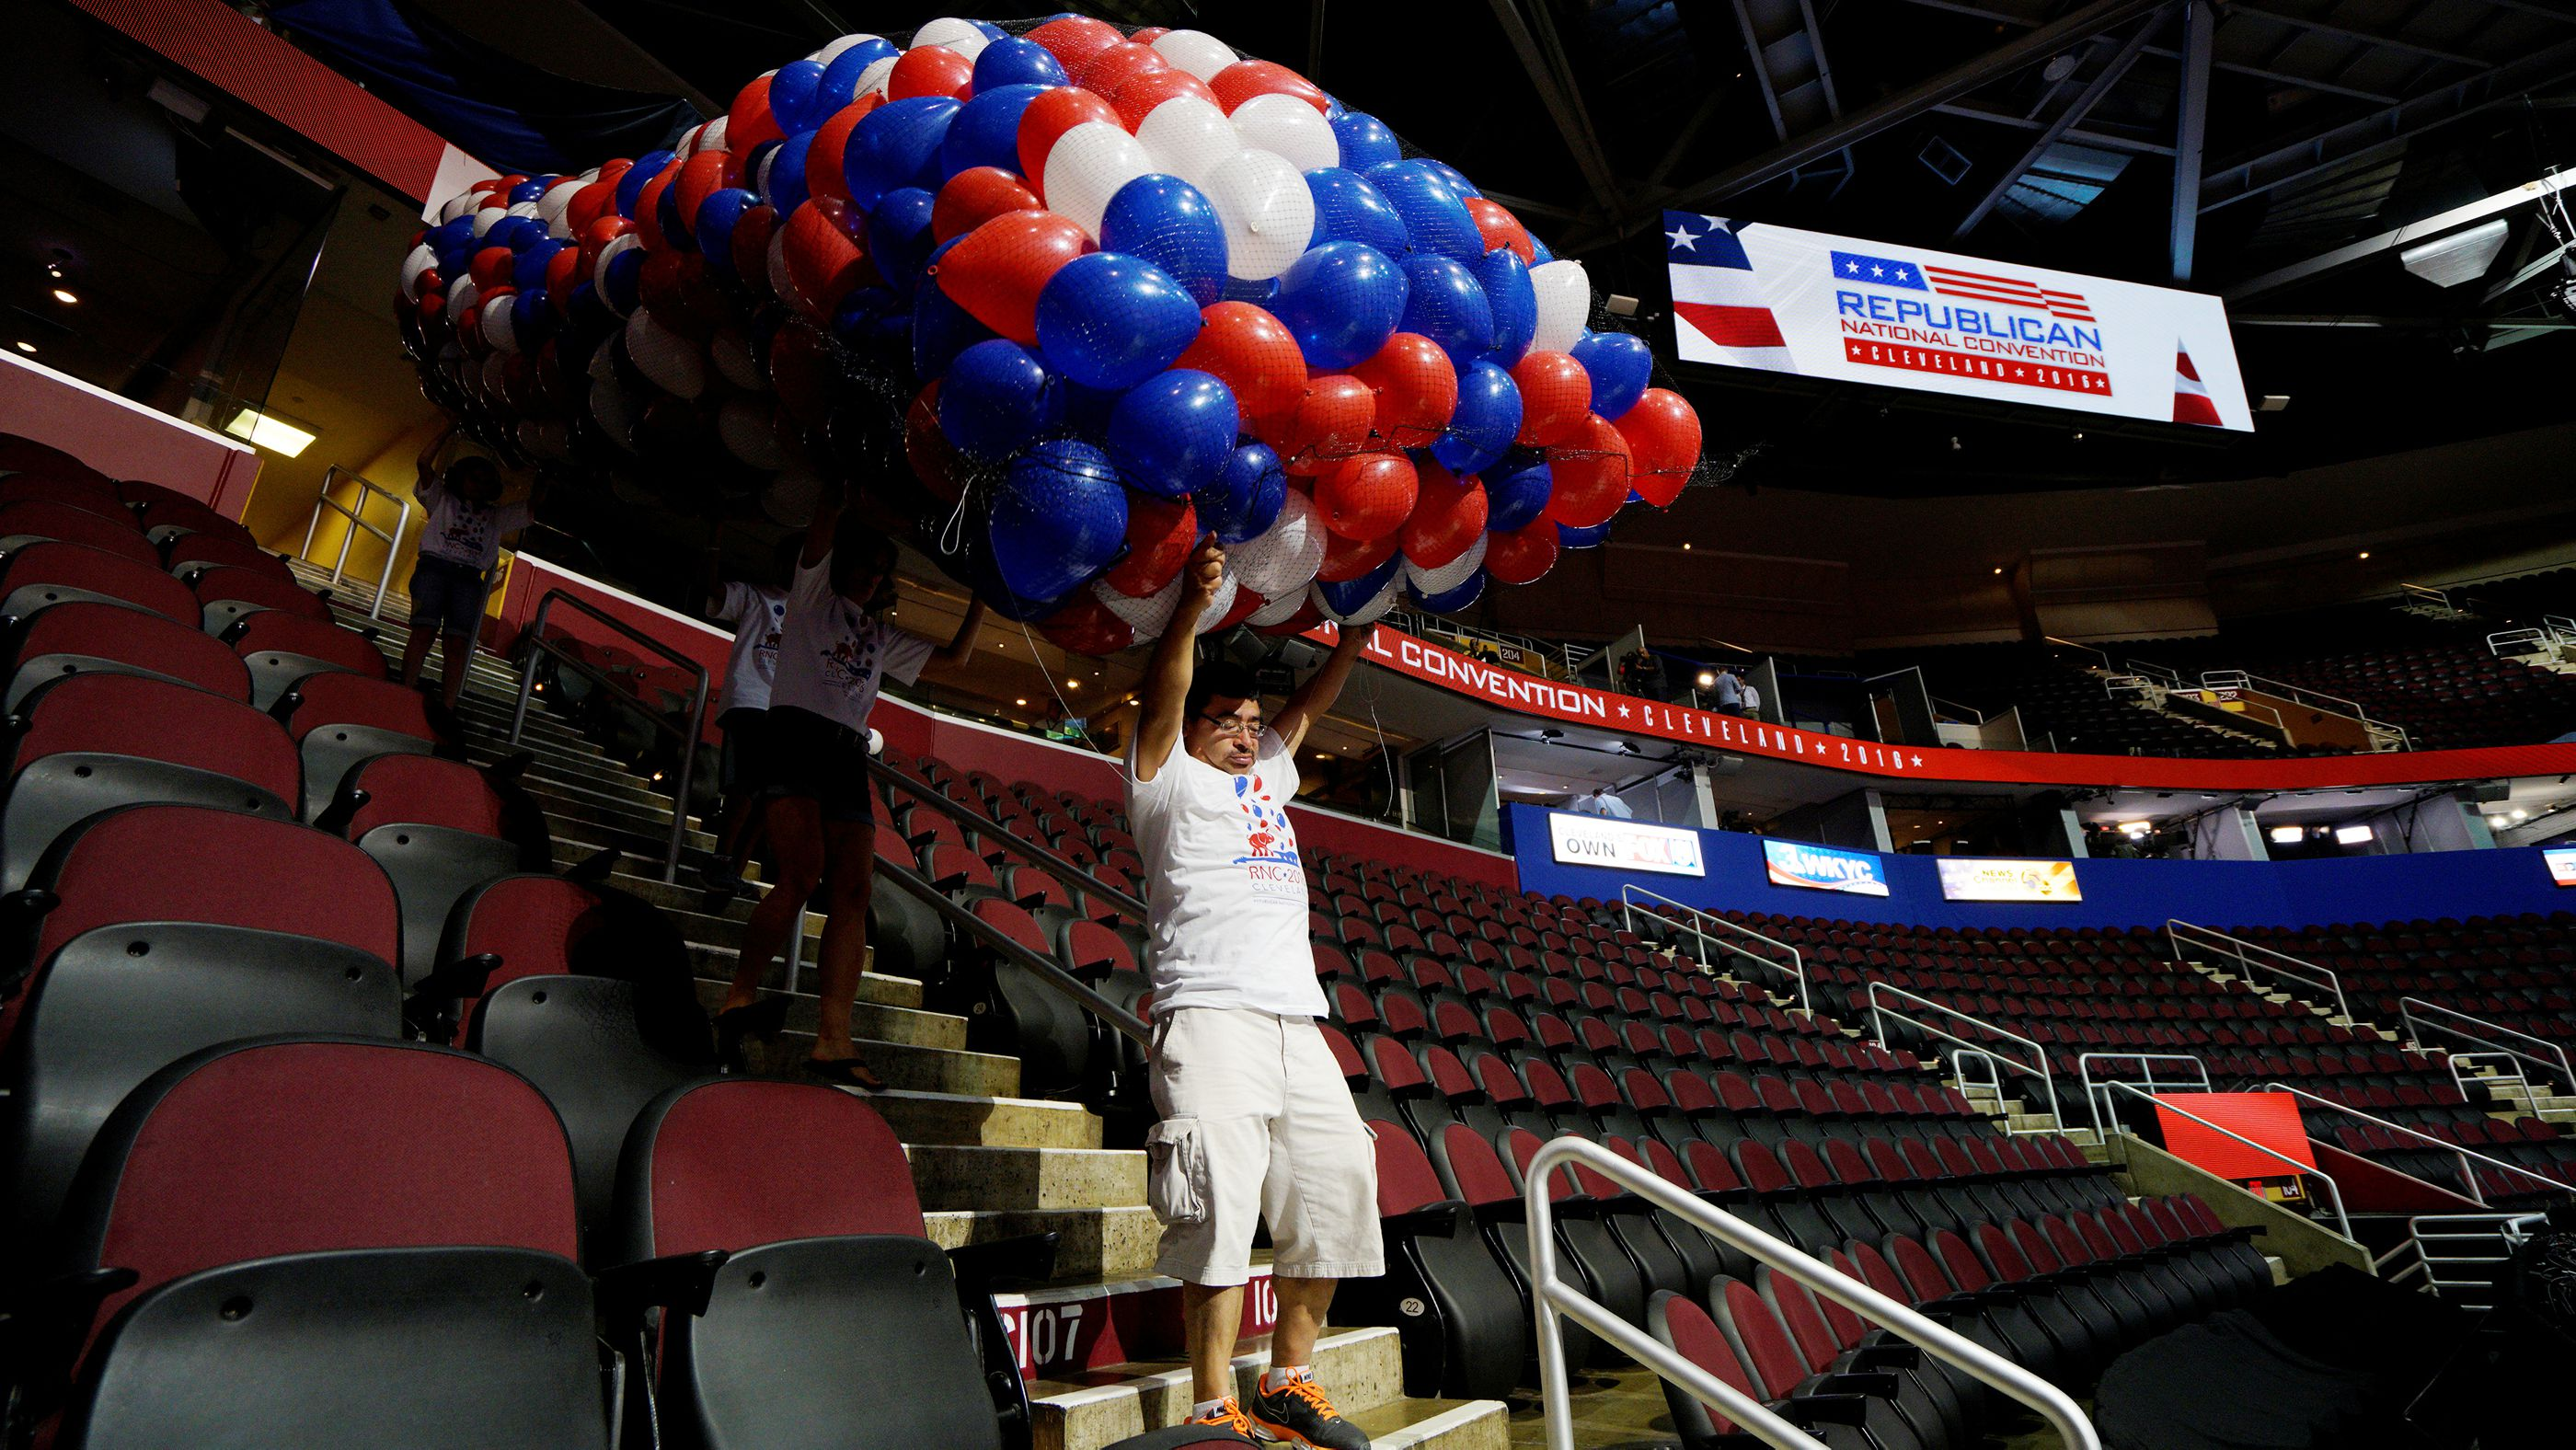 Workers carry balloons in the Quicken Loans Arena, site of the Republican National Convention in Cleveland.